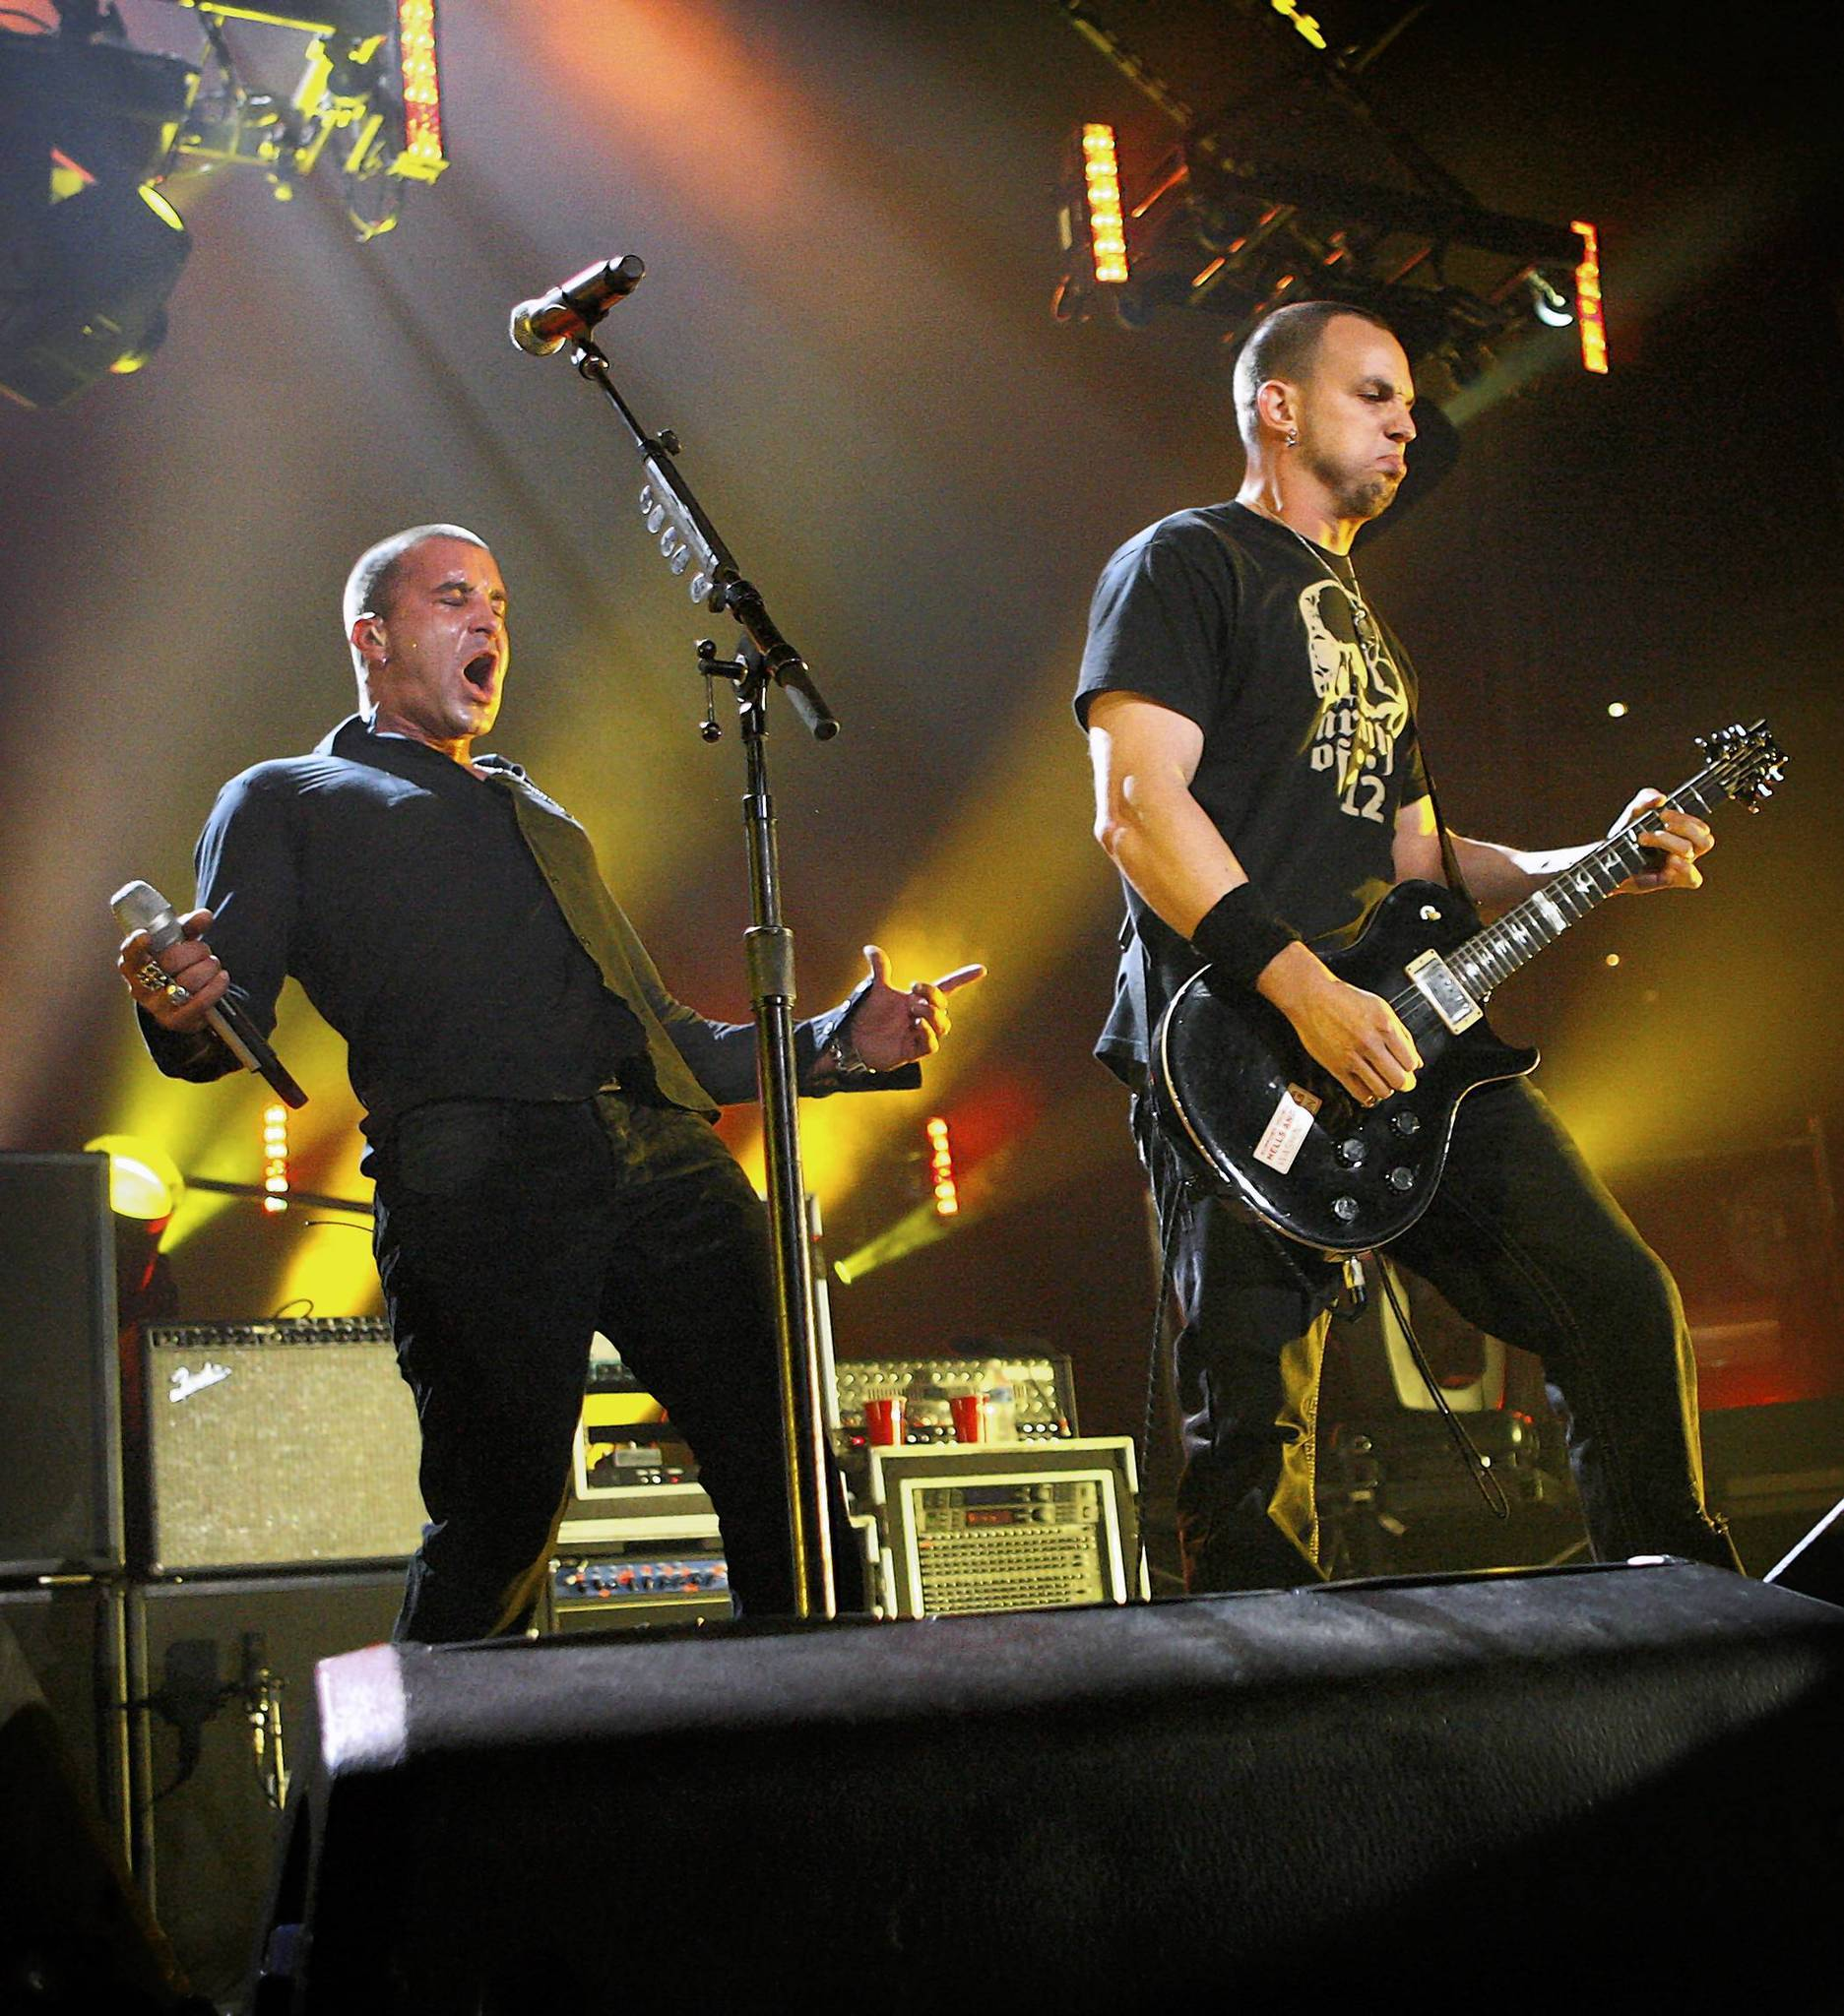 Creed performs at the Amway Arena on September, 15, 2009.